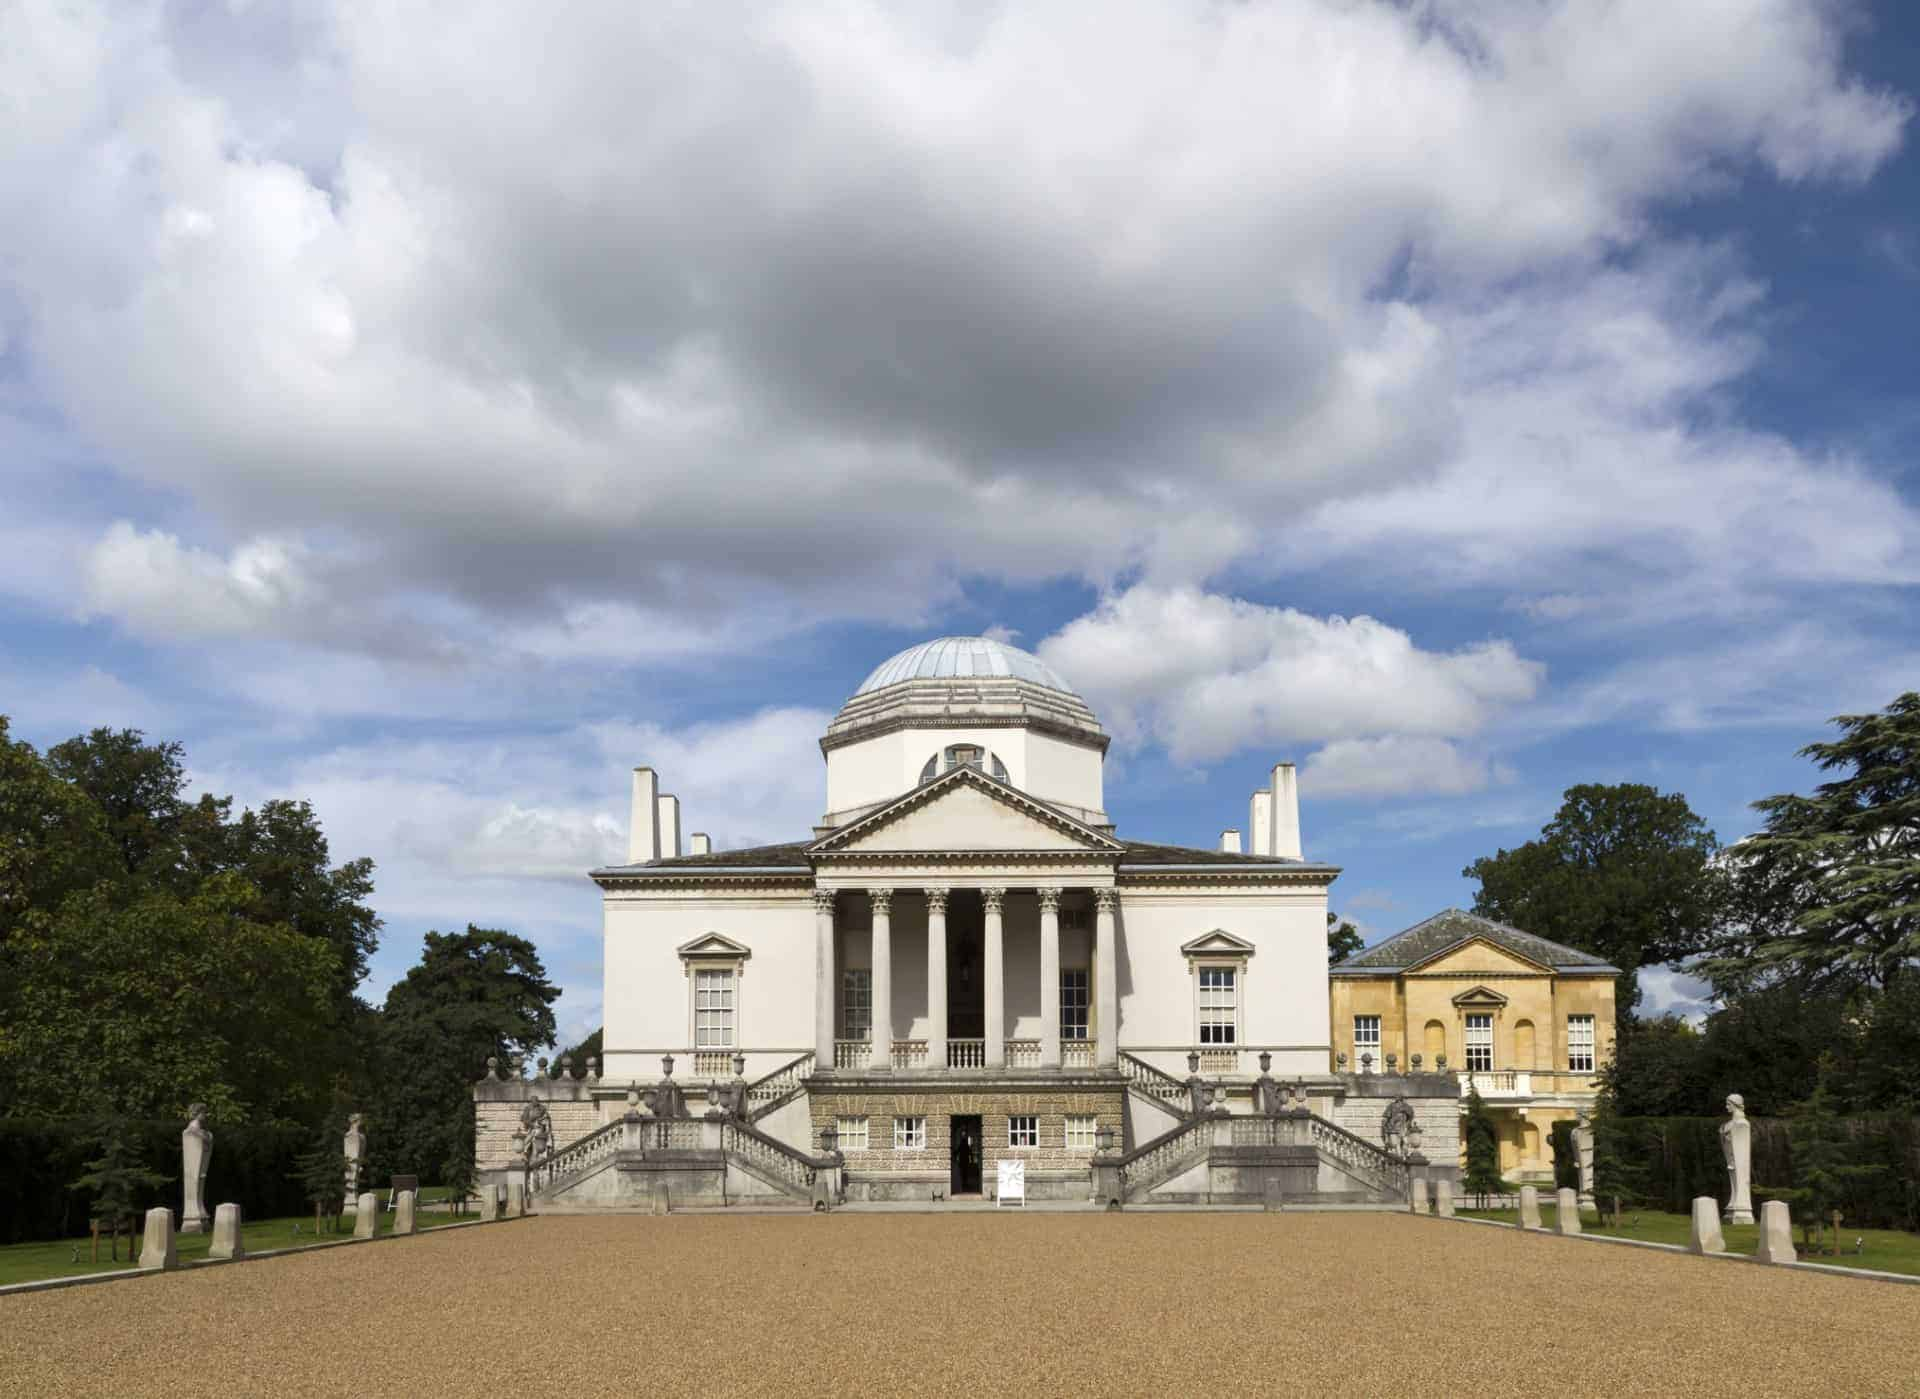 Chiswick House in London